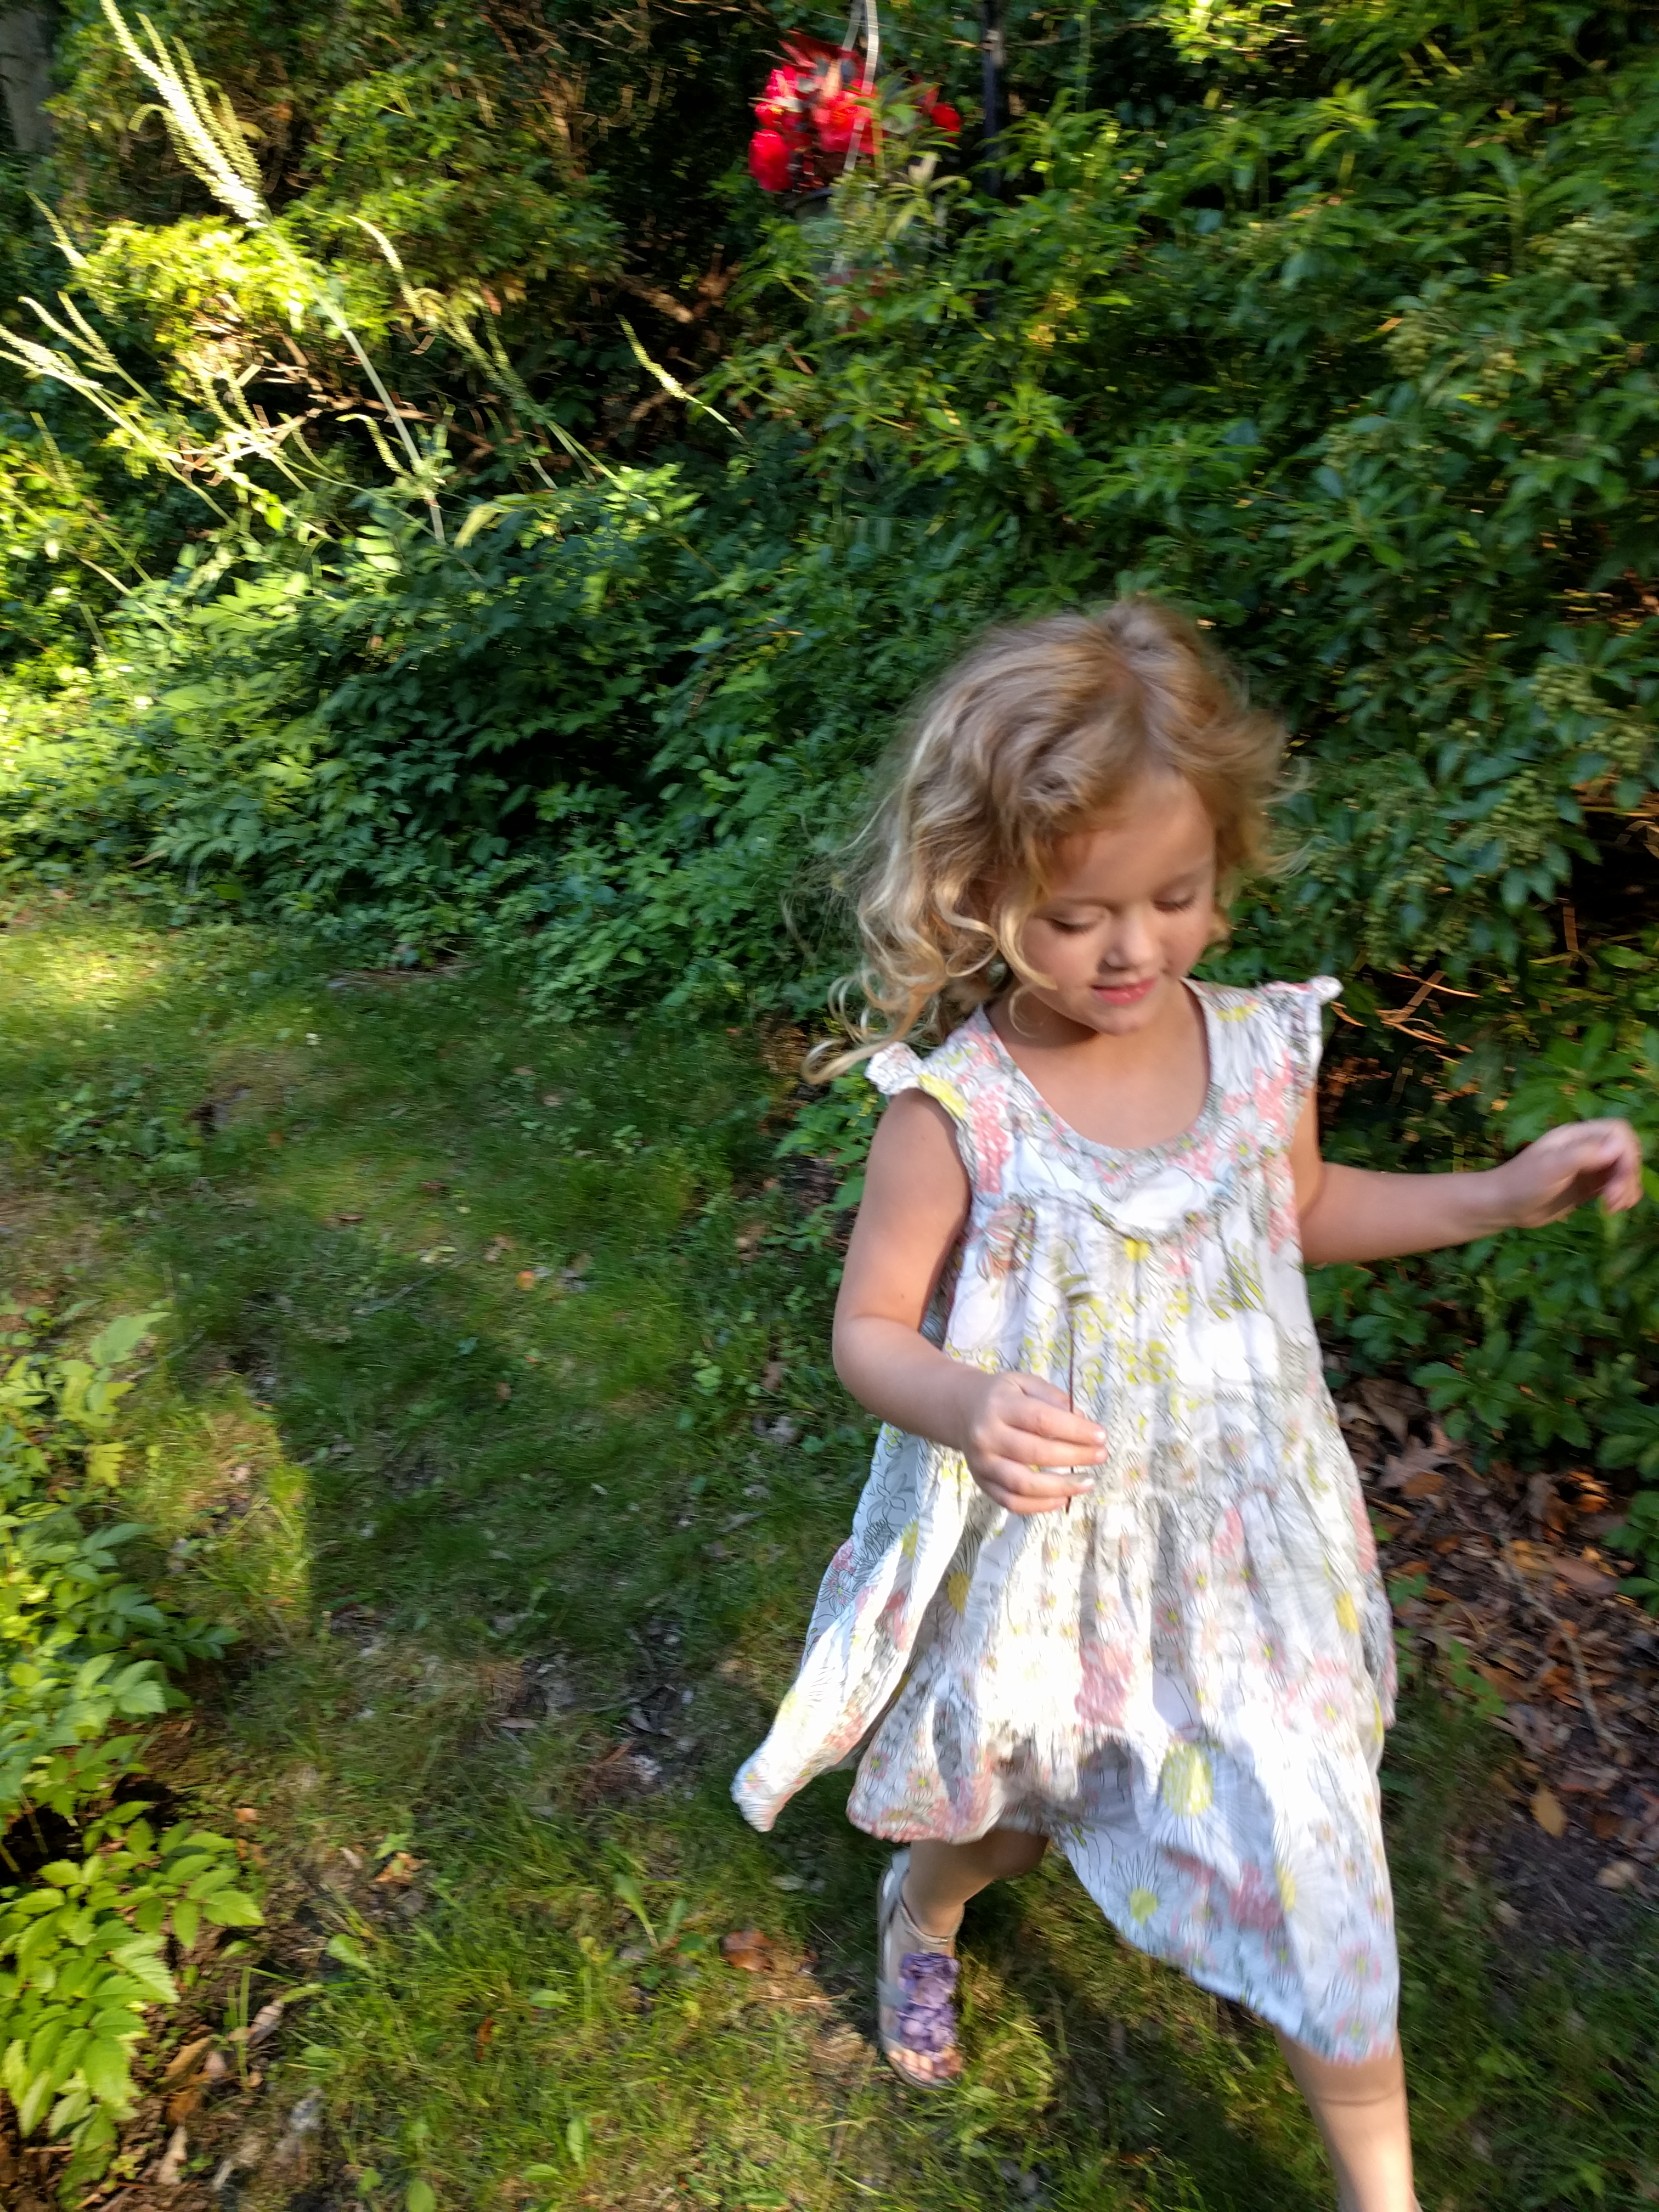 f337409b6f2 TIPS FROM A POTTY TRAINING EXPERT  Getting your child on the right path to potty  training